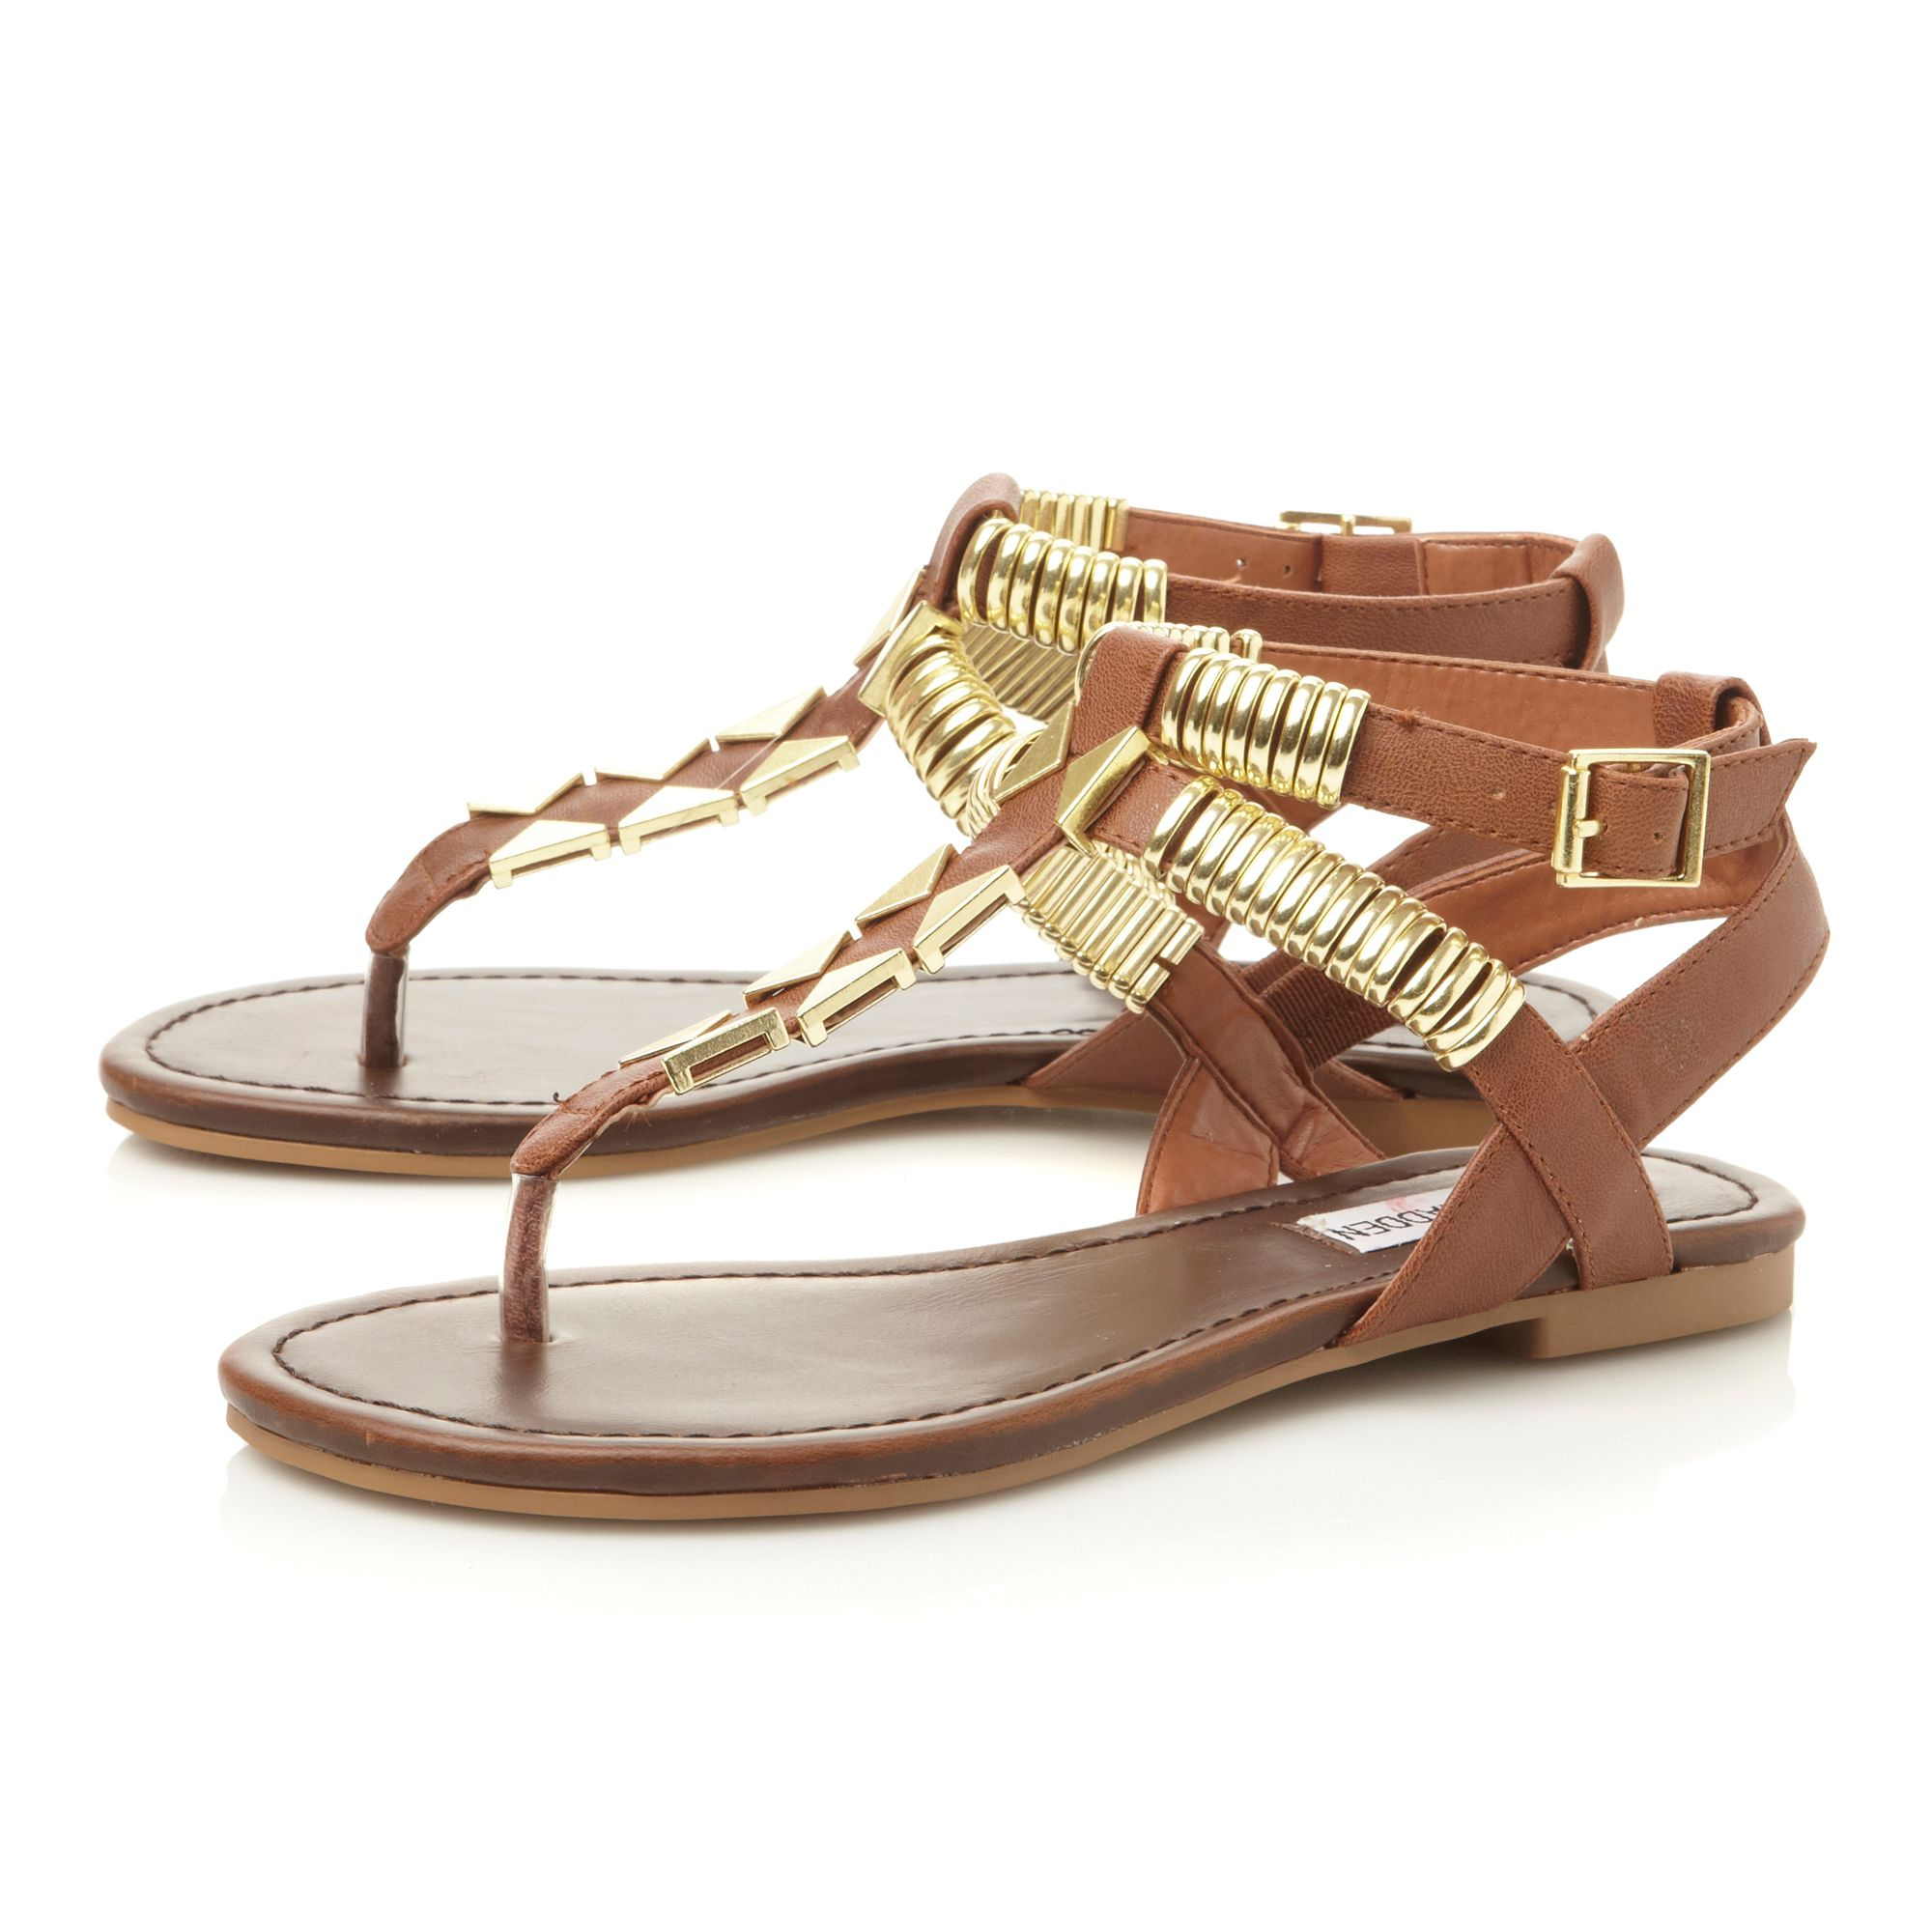 Invision metal hardware sandals